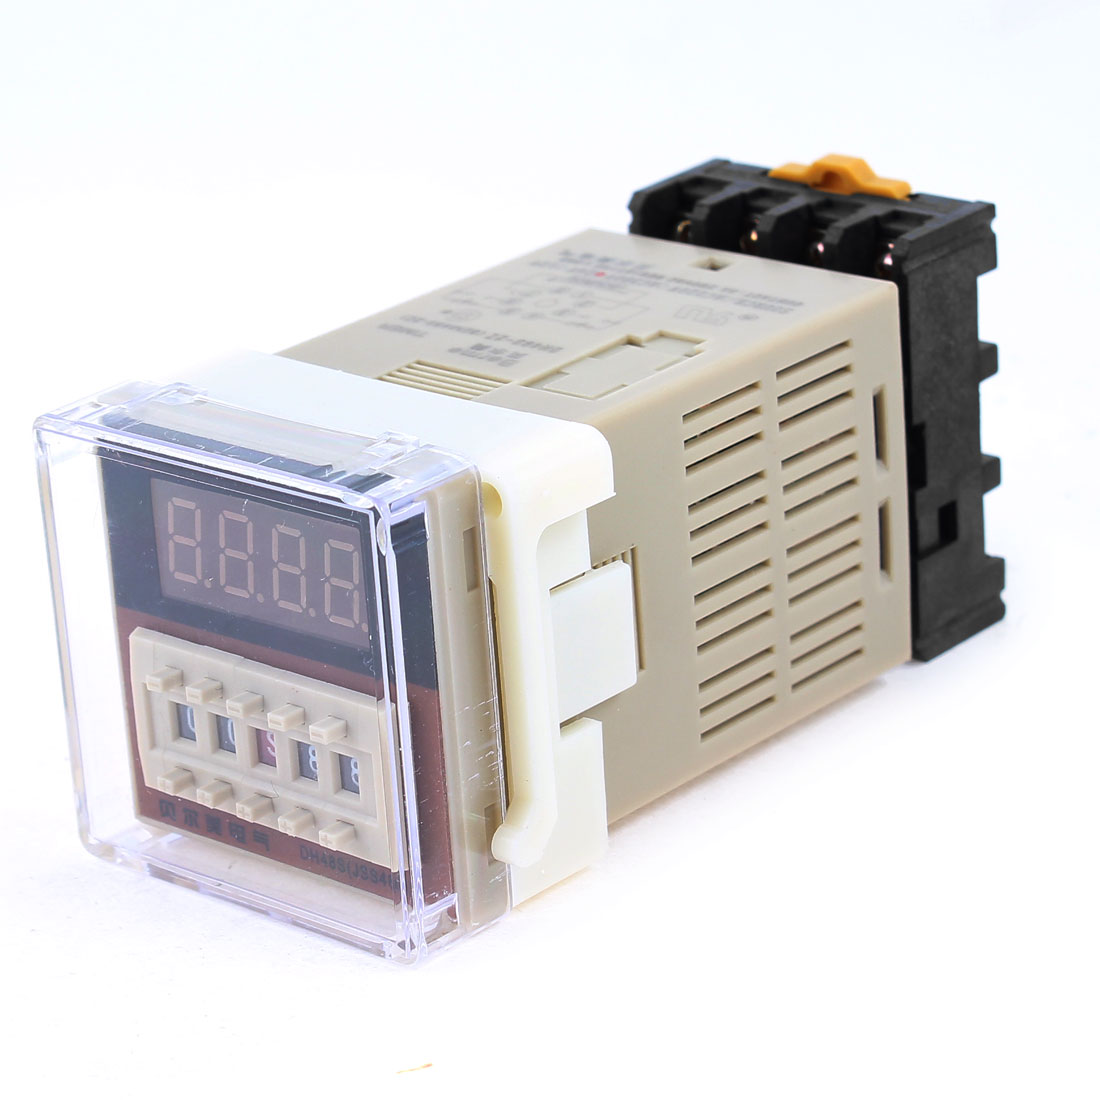 AC 24V DH48S-2Z Panel Mount DPDT 8Pin 0.01s-99H99M Adjustable Time Delay Control Programmable Timer Relay w Base Socket